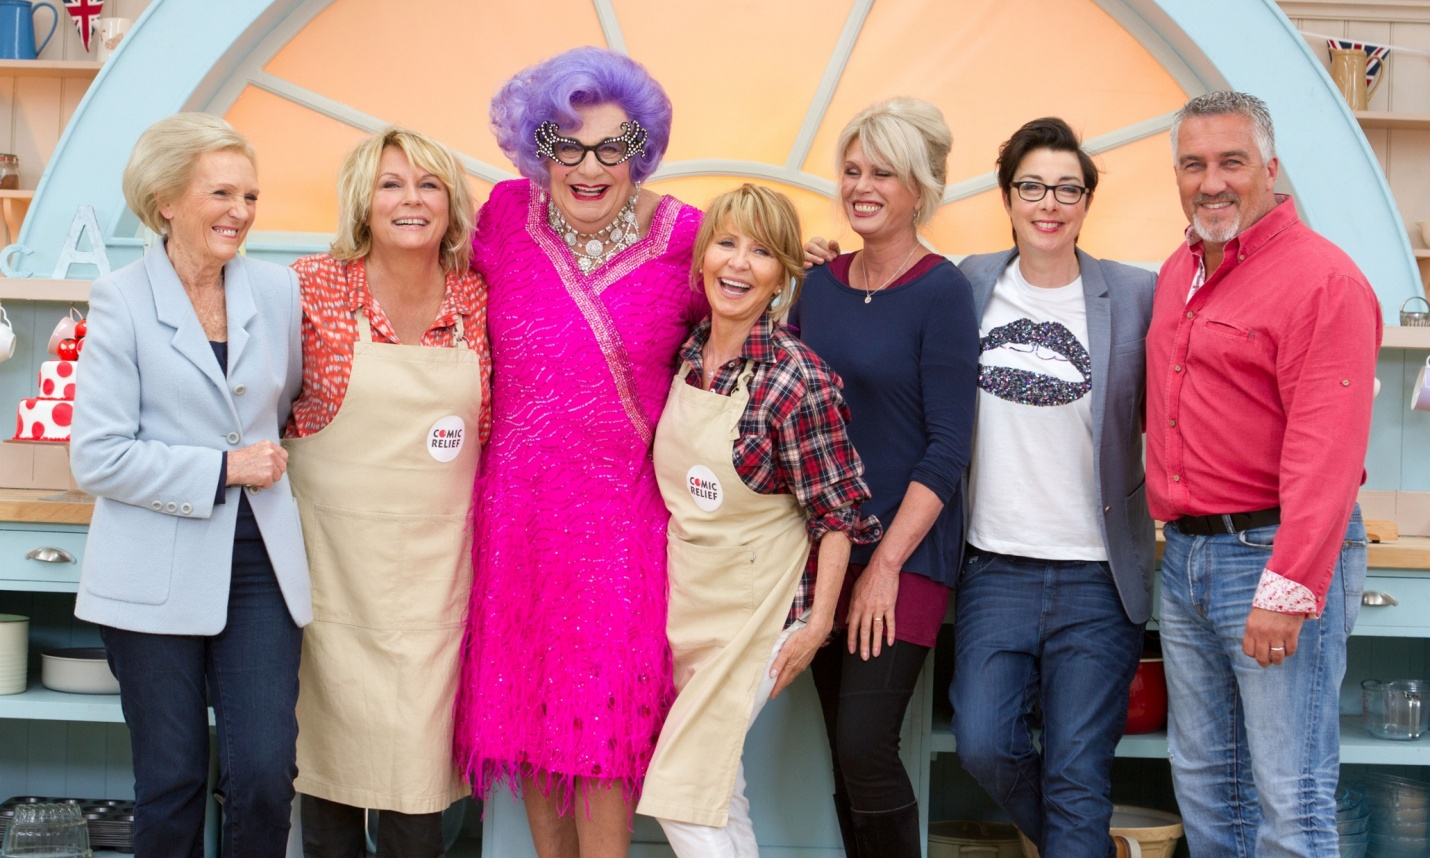 The Great Comic Relief Bake Off (2015)